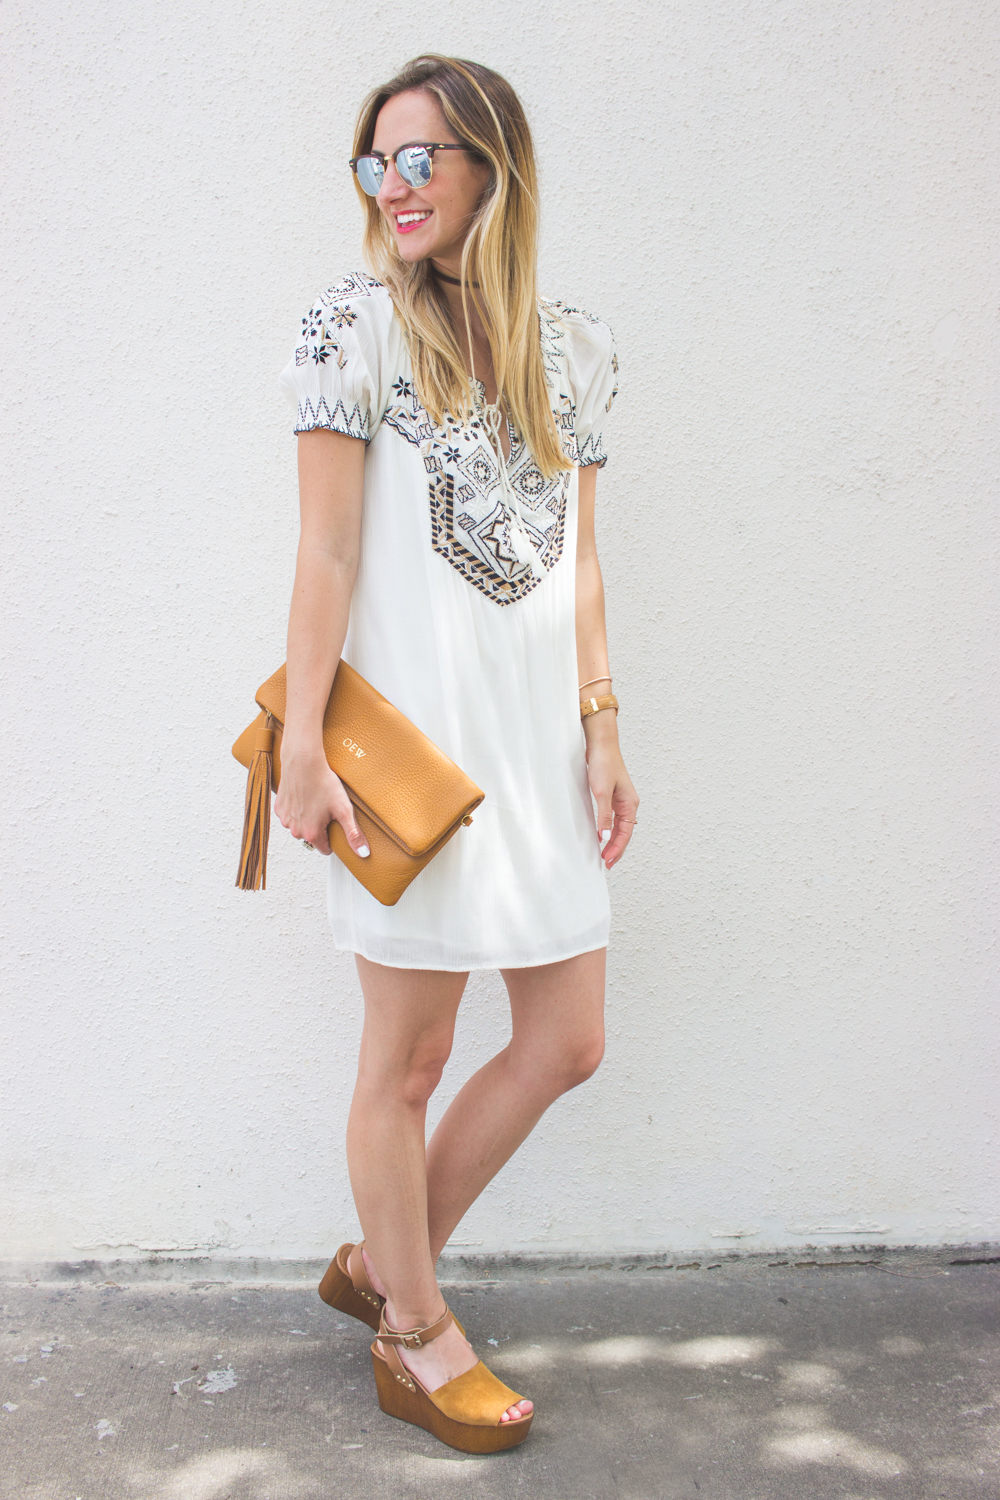 livvyland-blog-olivia-watson-austin-texas-fashion-blogger-abercrombie-and-fitch-embroidered-off-shoulder-dress-seychelles-platform-wedge-sandals-boho-outfit-ray-ban-reflective-clubmaster-summer-outfit-1